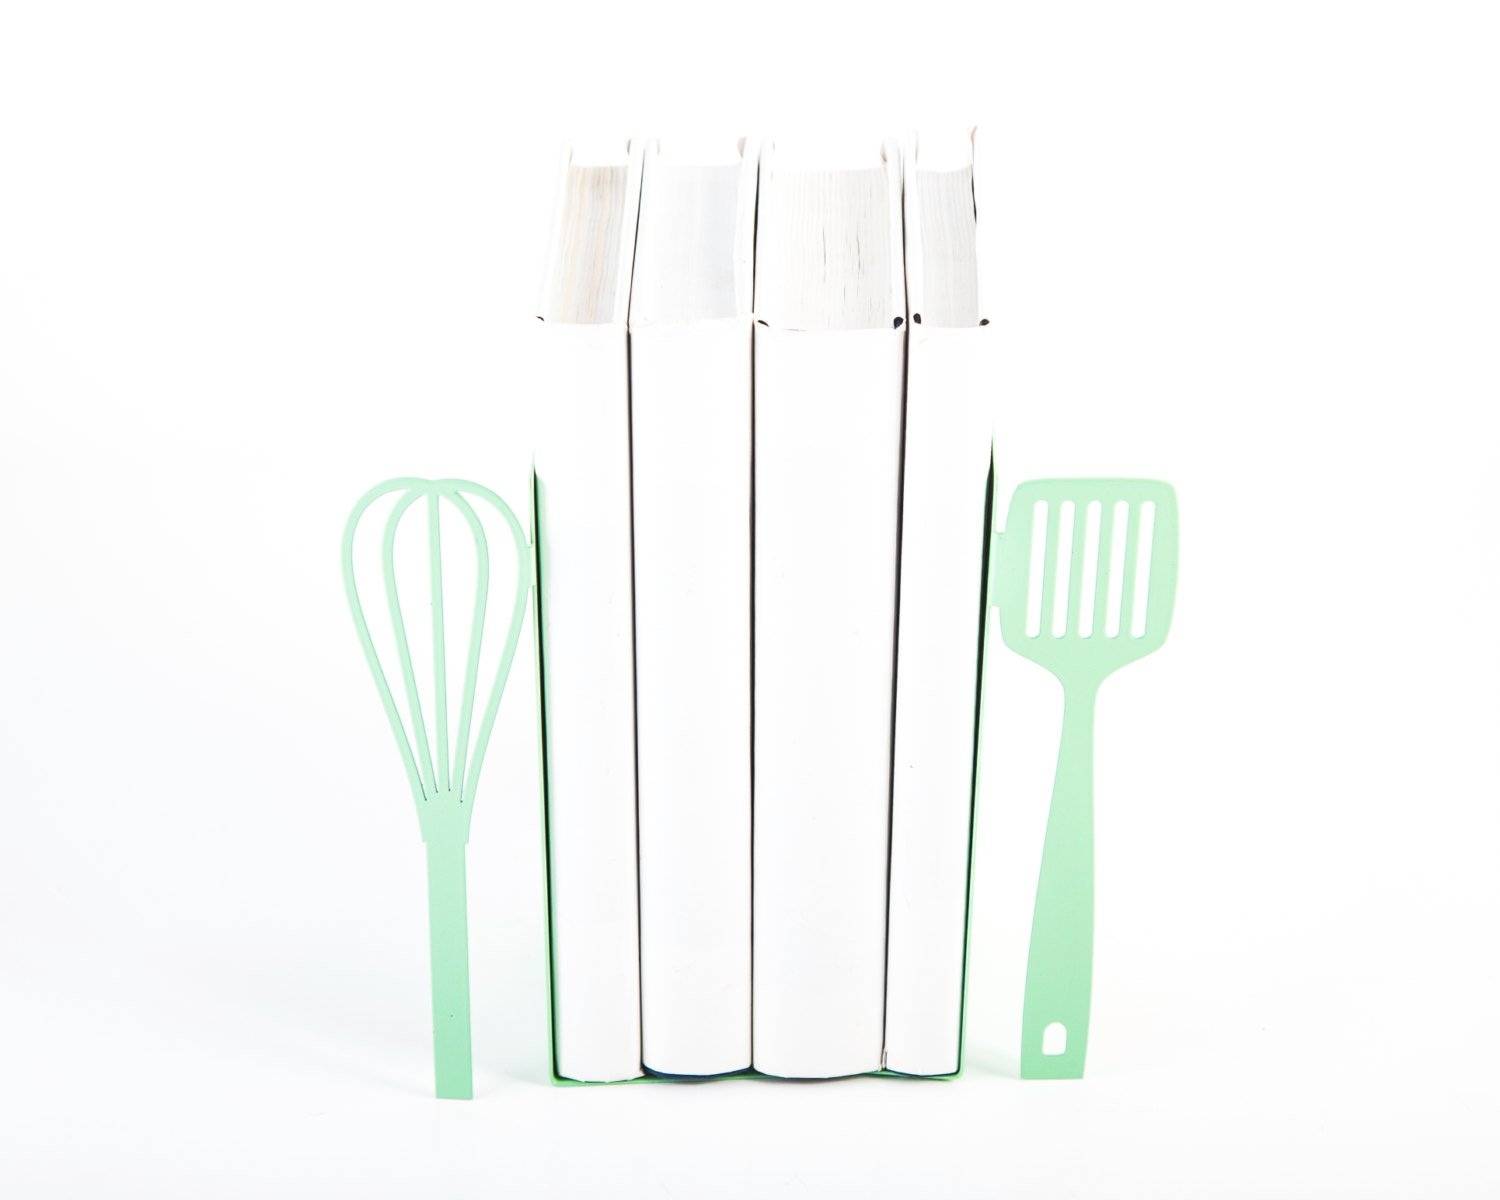 Metal Kitchen Bookends Spatula and whisk // Mint // functional kitchen decor // FREE SHIPPING - Design Atelier Article